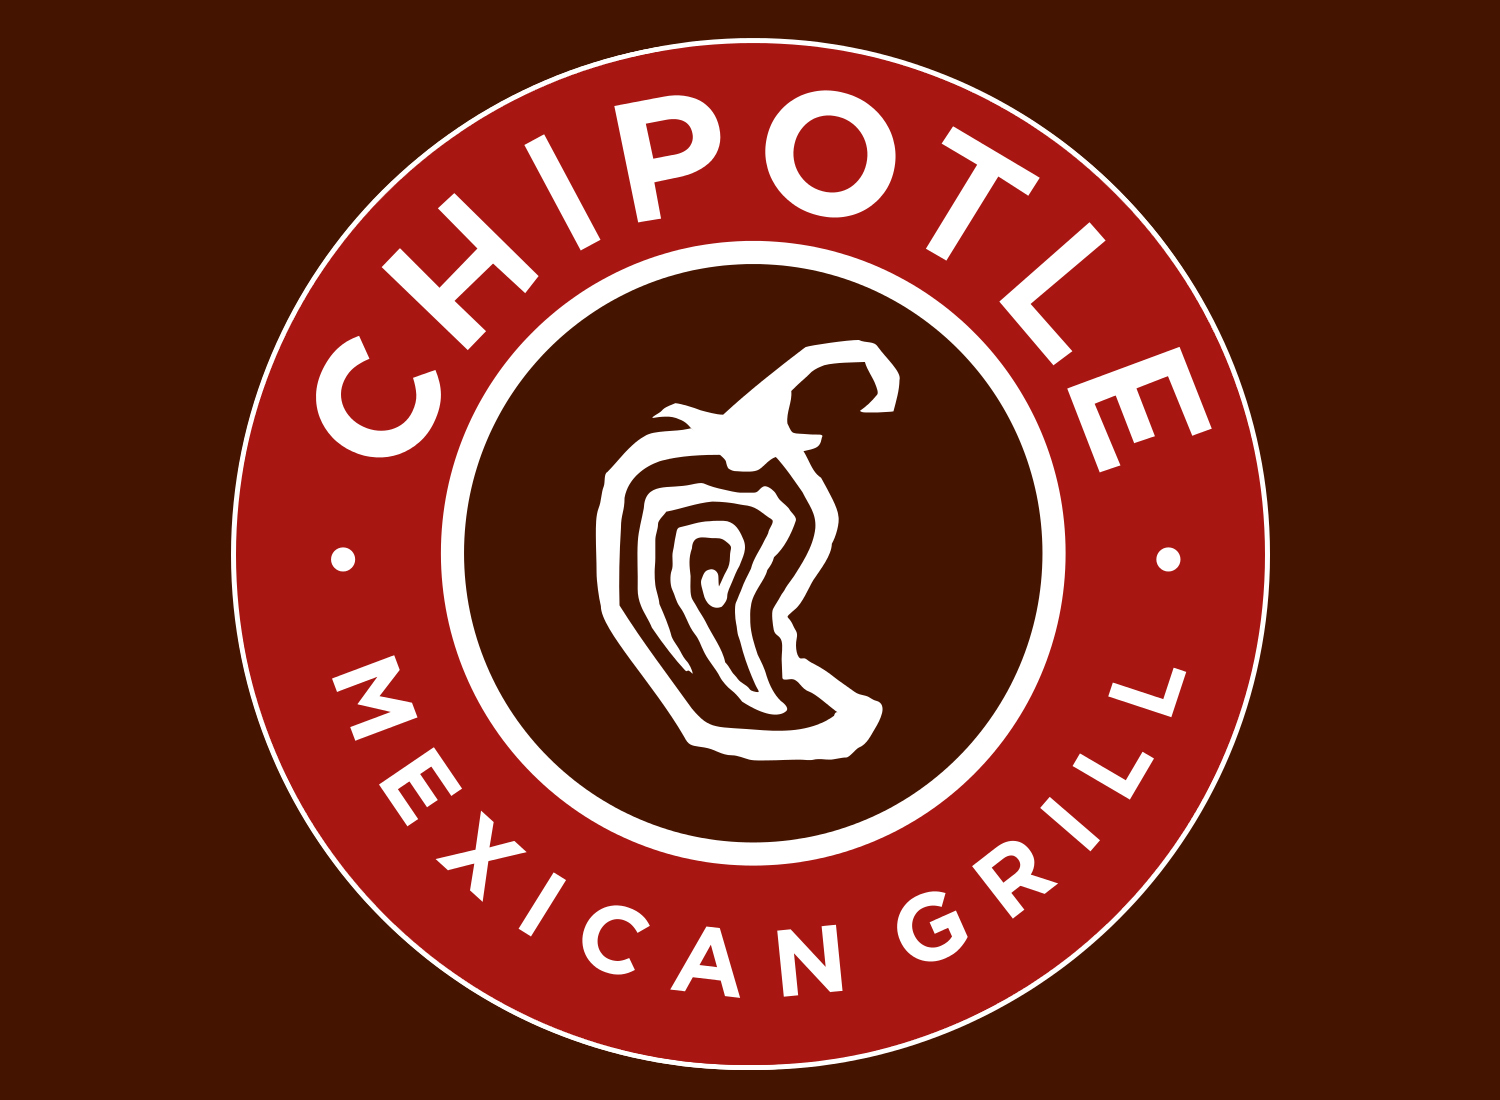 Boys Tennis Chipotle Fundraiser – March 19th